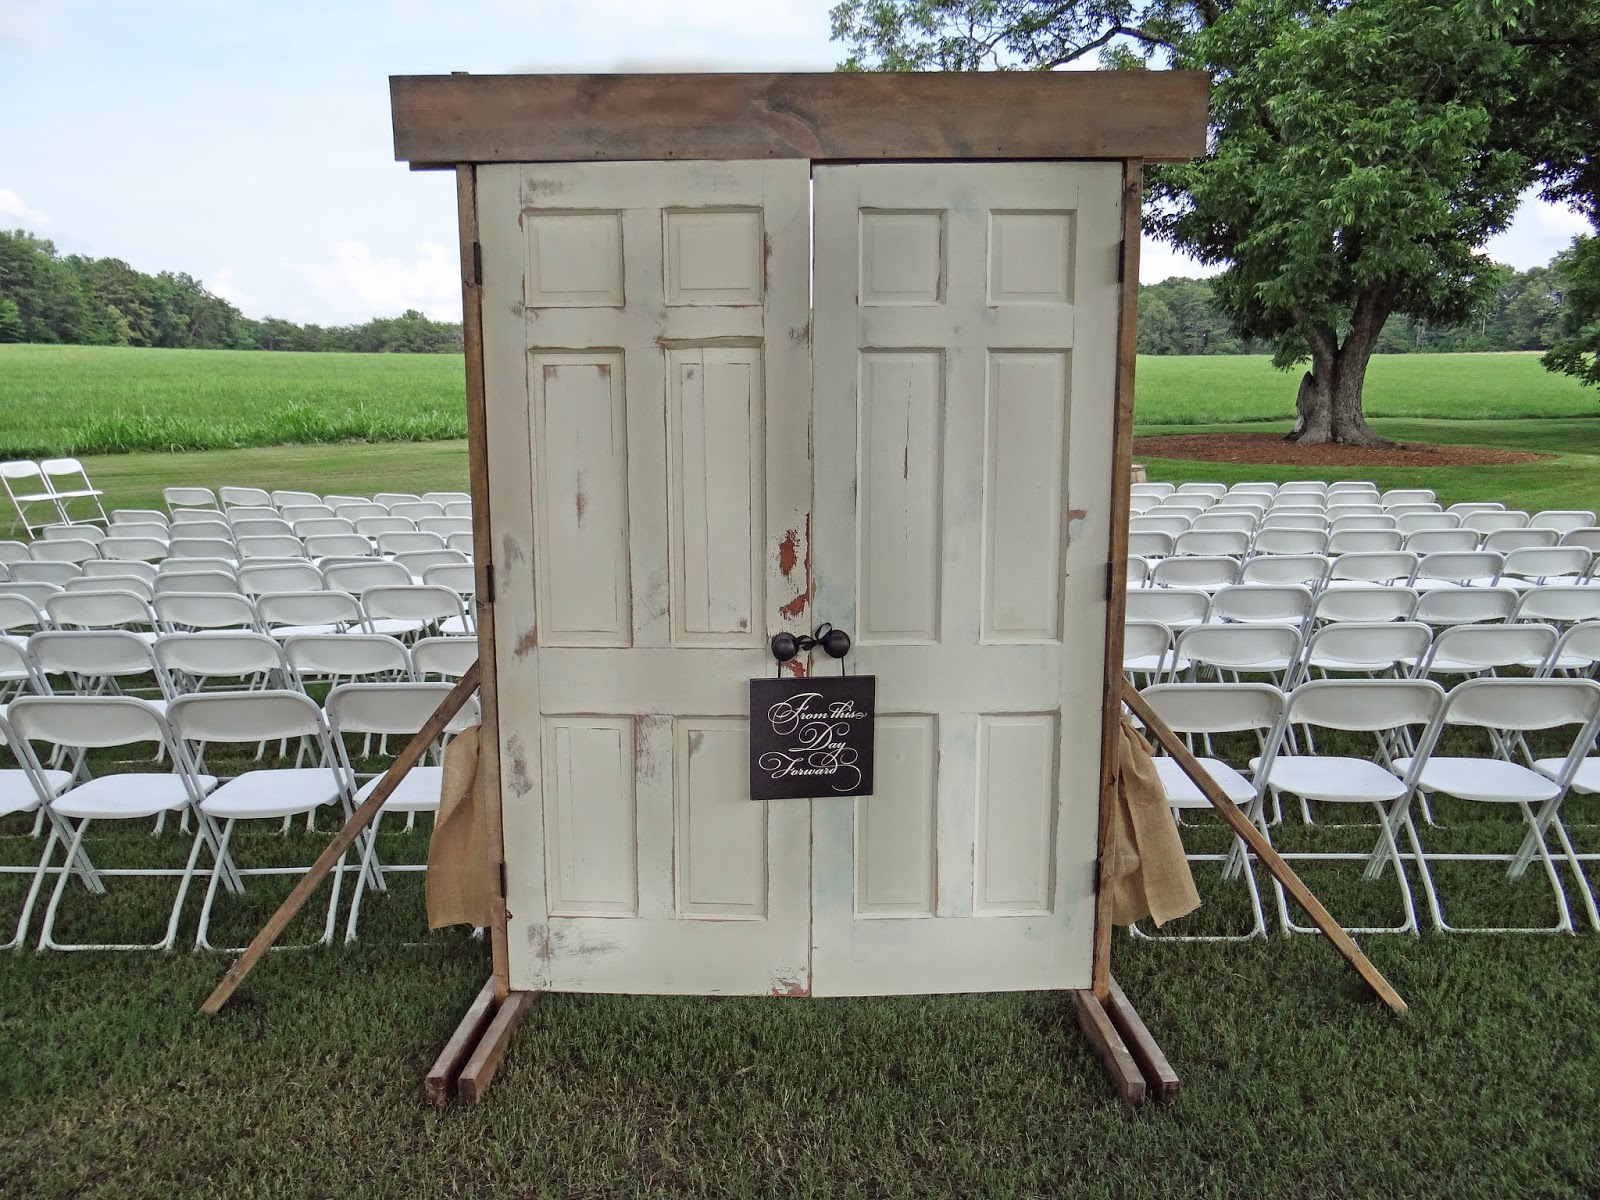 Rustic Vintage Doors Opened To A View Of The Meadow And Pecan Trees Mark Beginning Aisle Which Was Lined With Pails